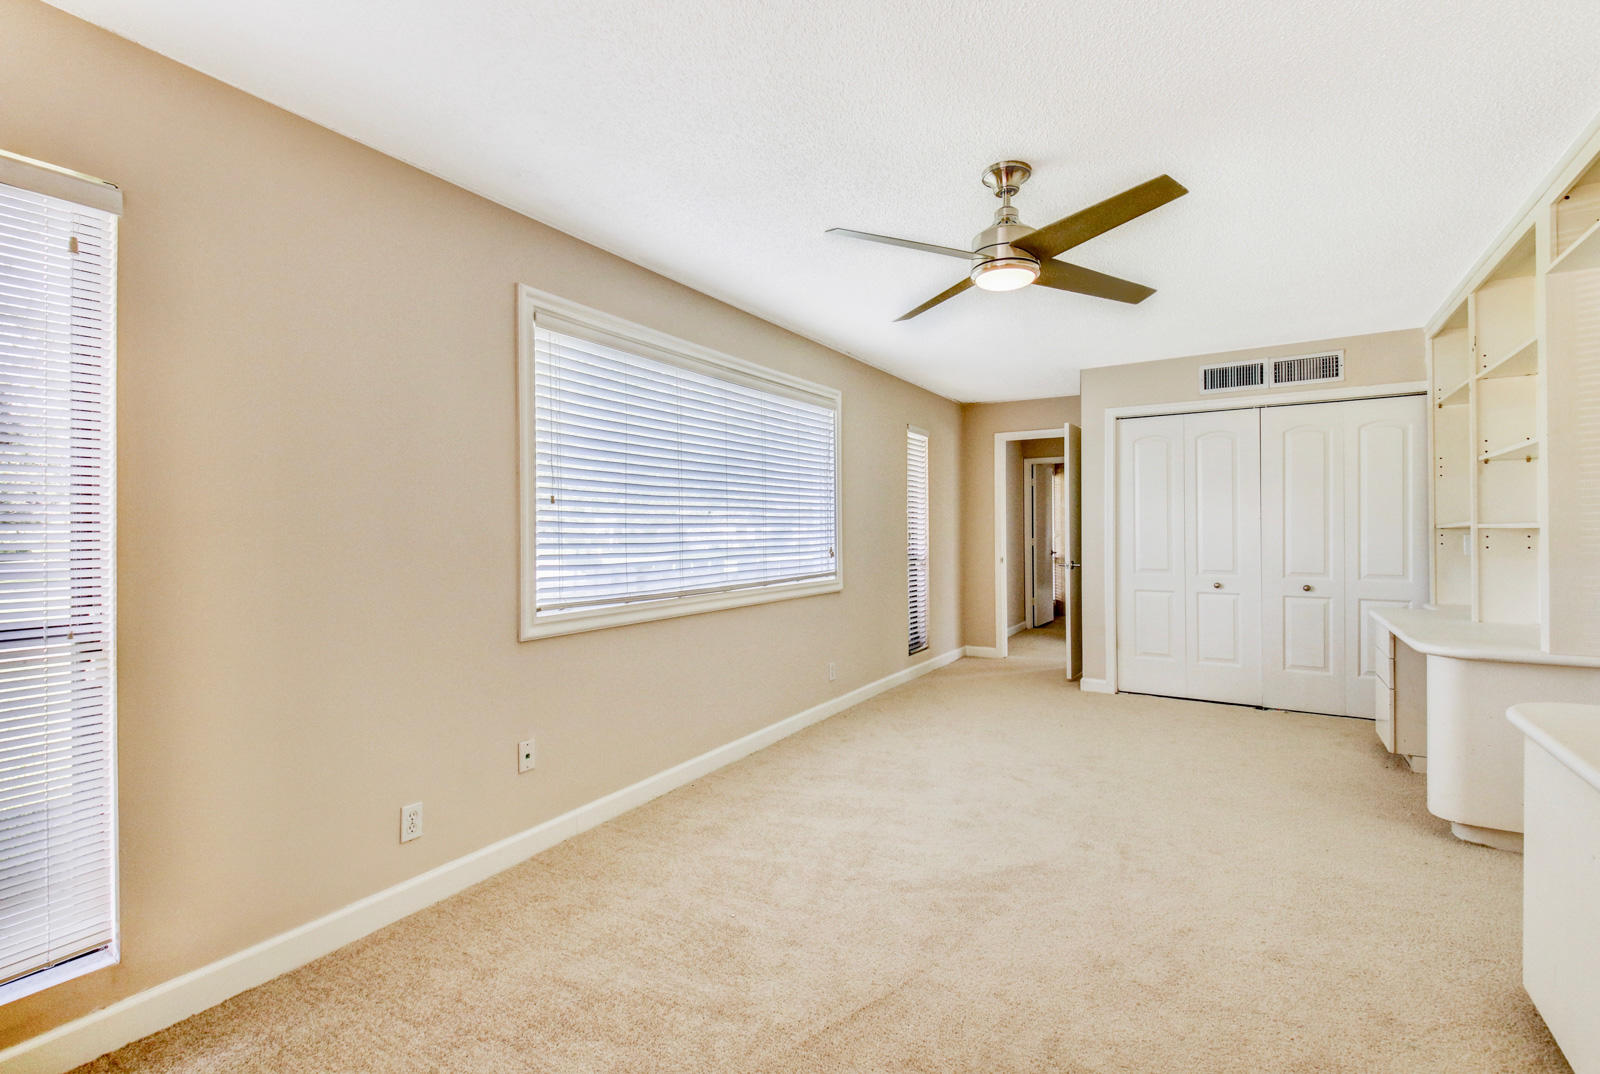 13860 Whispering Lakes Lane, West Palm Beach, Florida 33418, 3 Bedrooms Bedrooms, ,3 BathroomsBathrooms,A,Single family,Whispering Lakes,RX-10502399